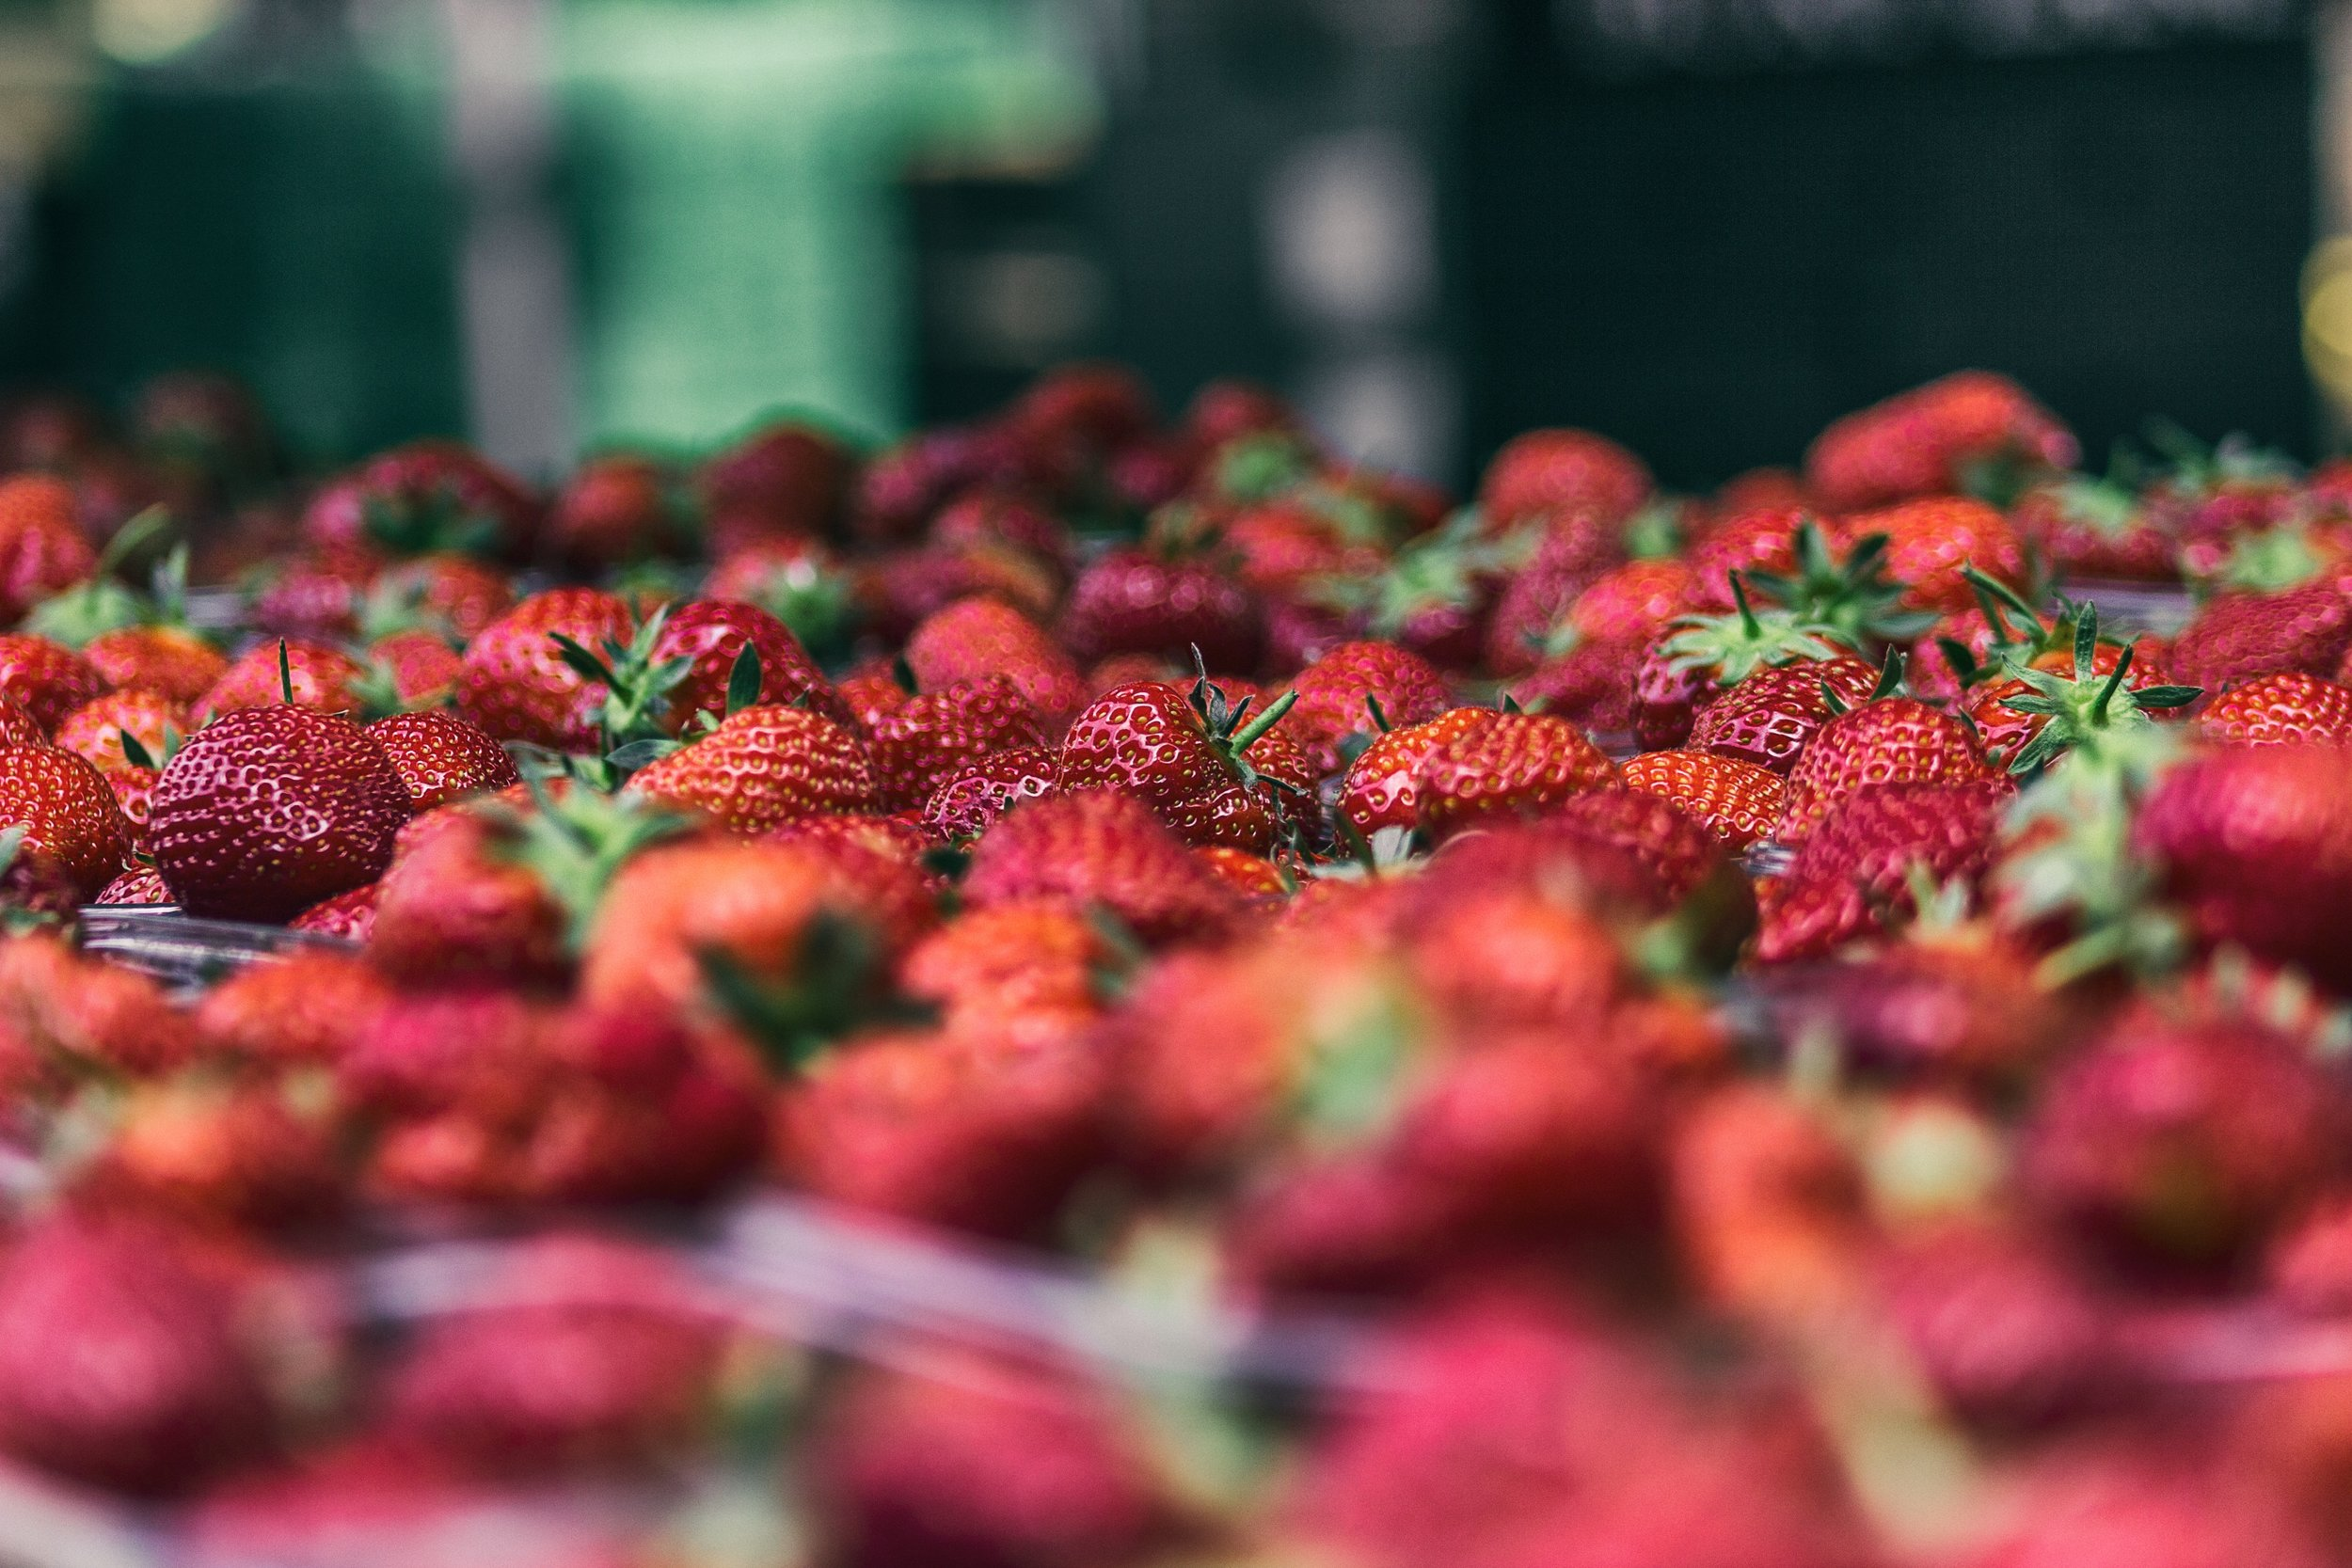 Jaime Mass Nutritionals - National Strawberry Day